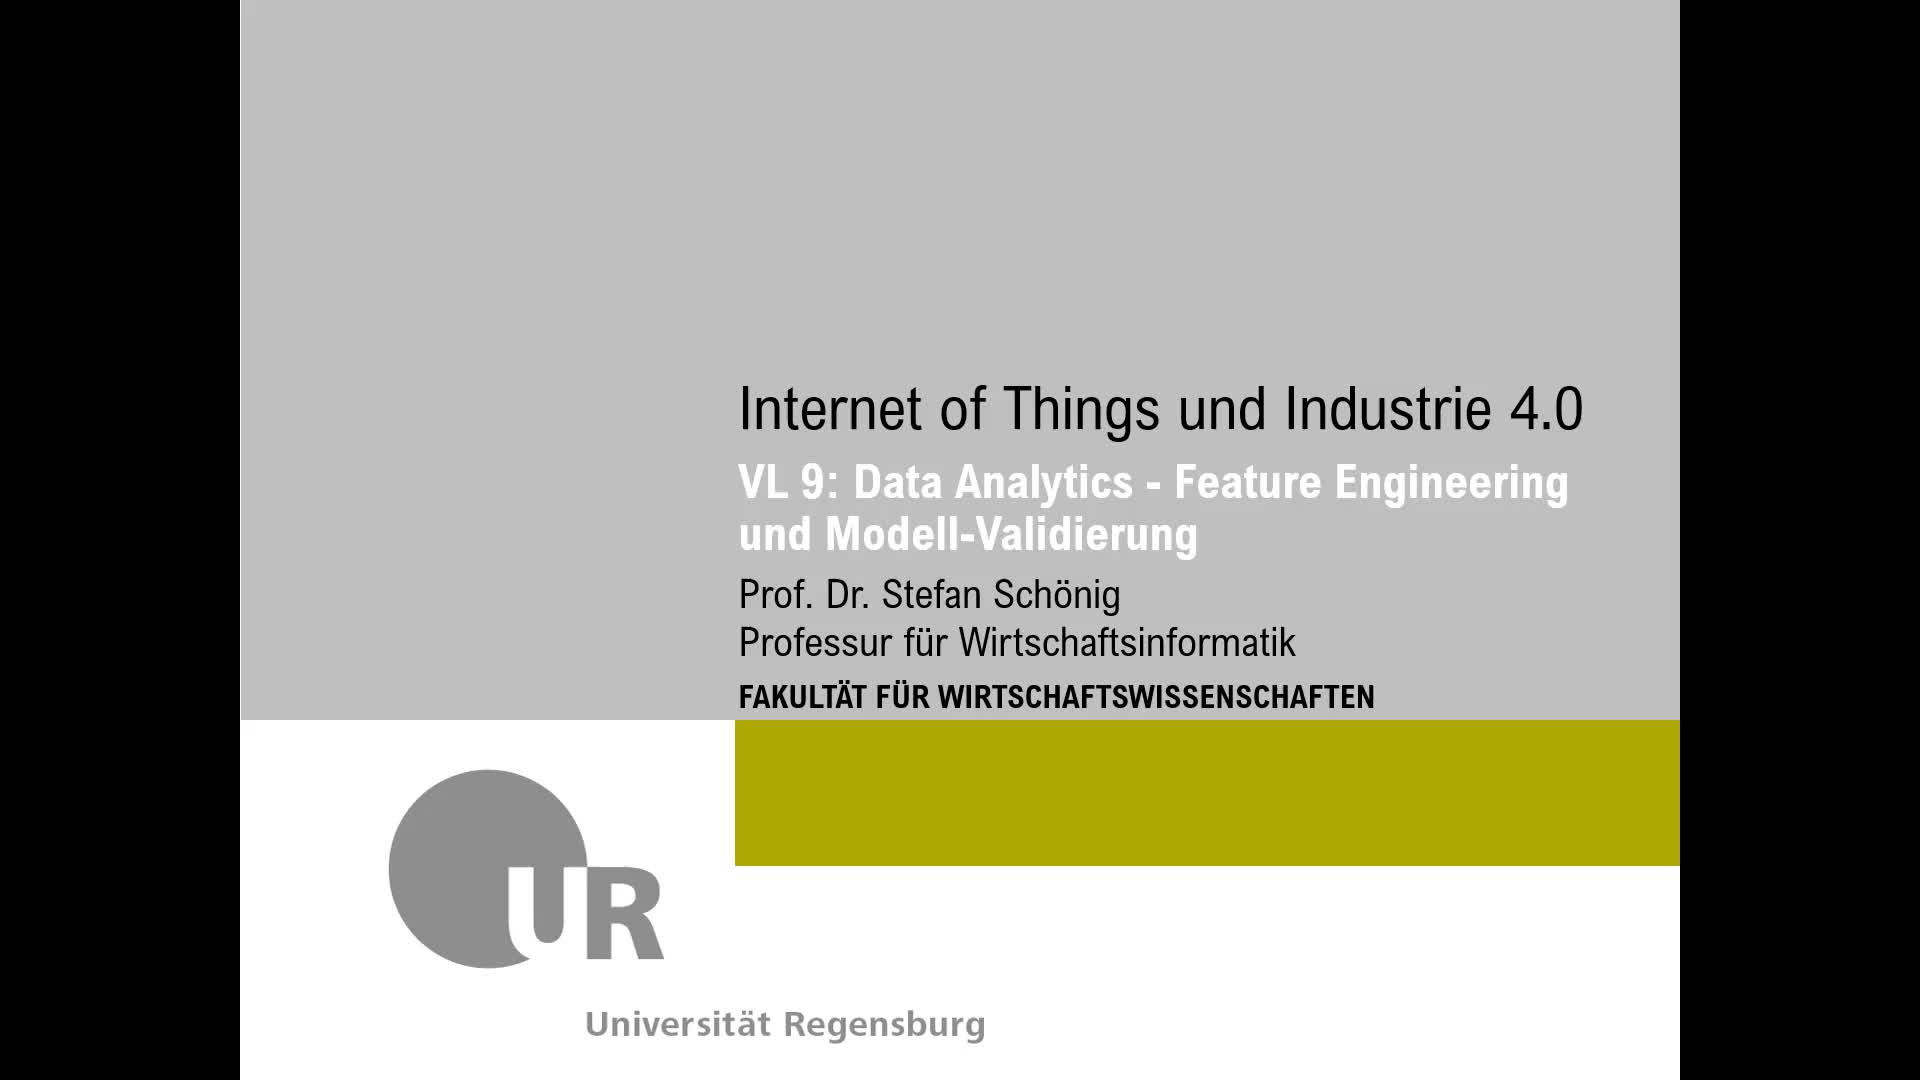 SS 2020 - Internet of Things und Industrie 4.0 - Kapitel 9 (Data Analytics - Modell Validierung)